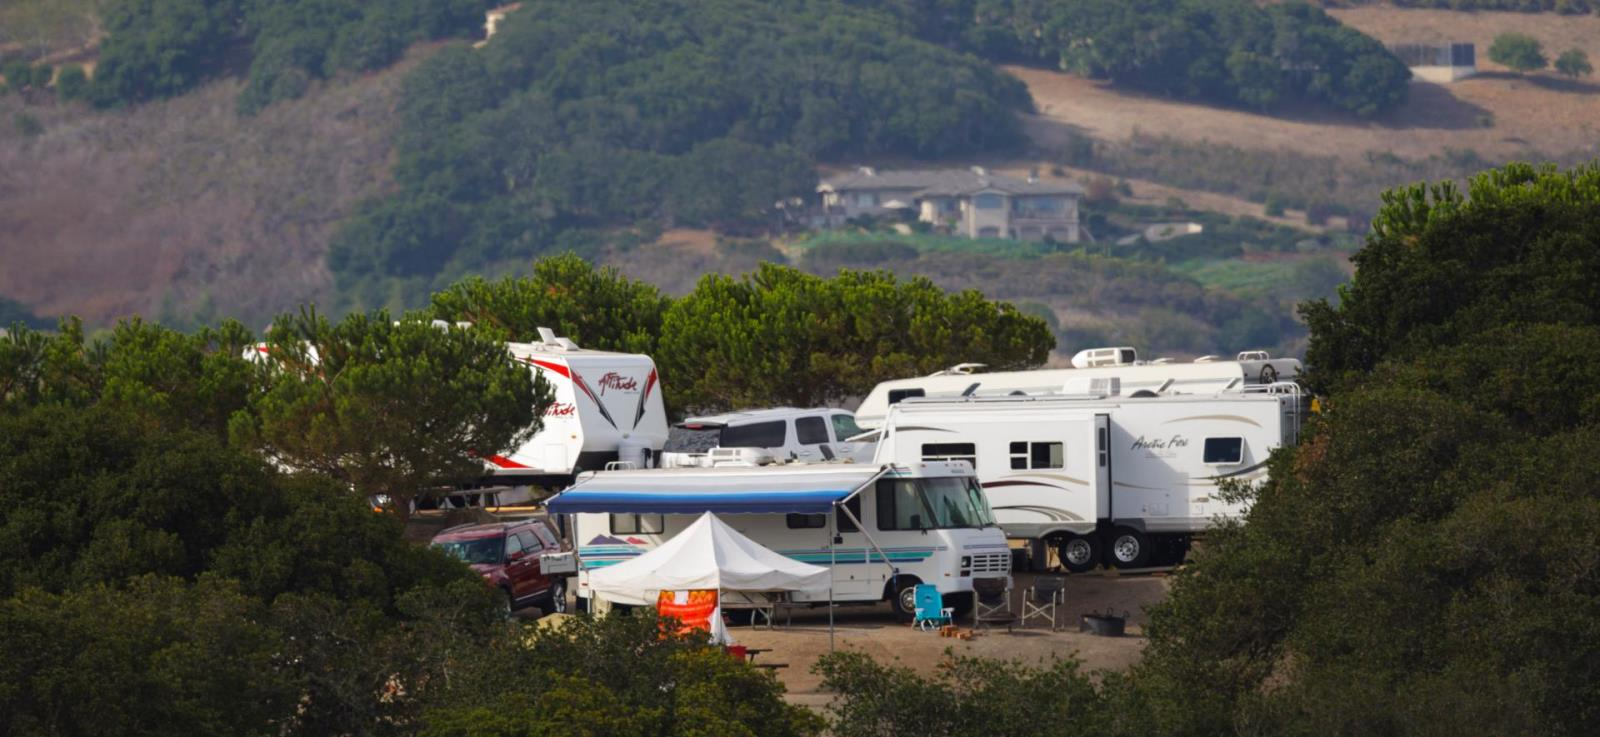 image of multiple rv's in camping area